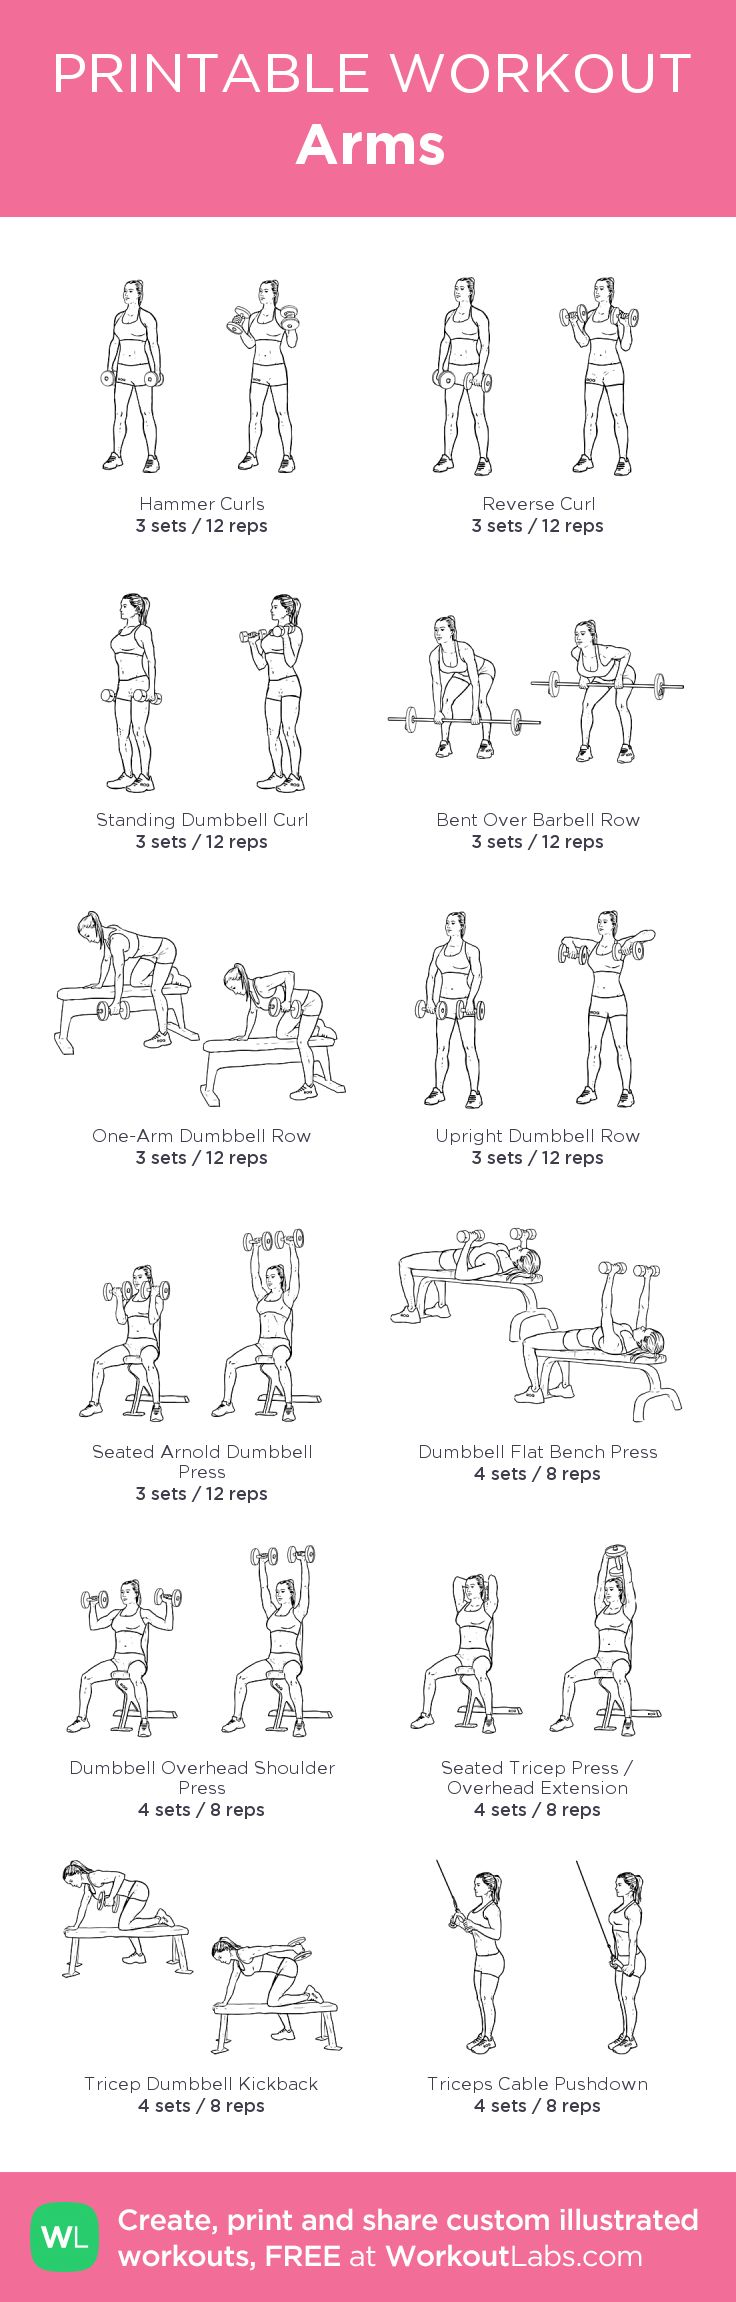 Arms –my custom workout created at WorkoutLabs.com • Click through to download as printable PDF! #customworkout